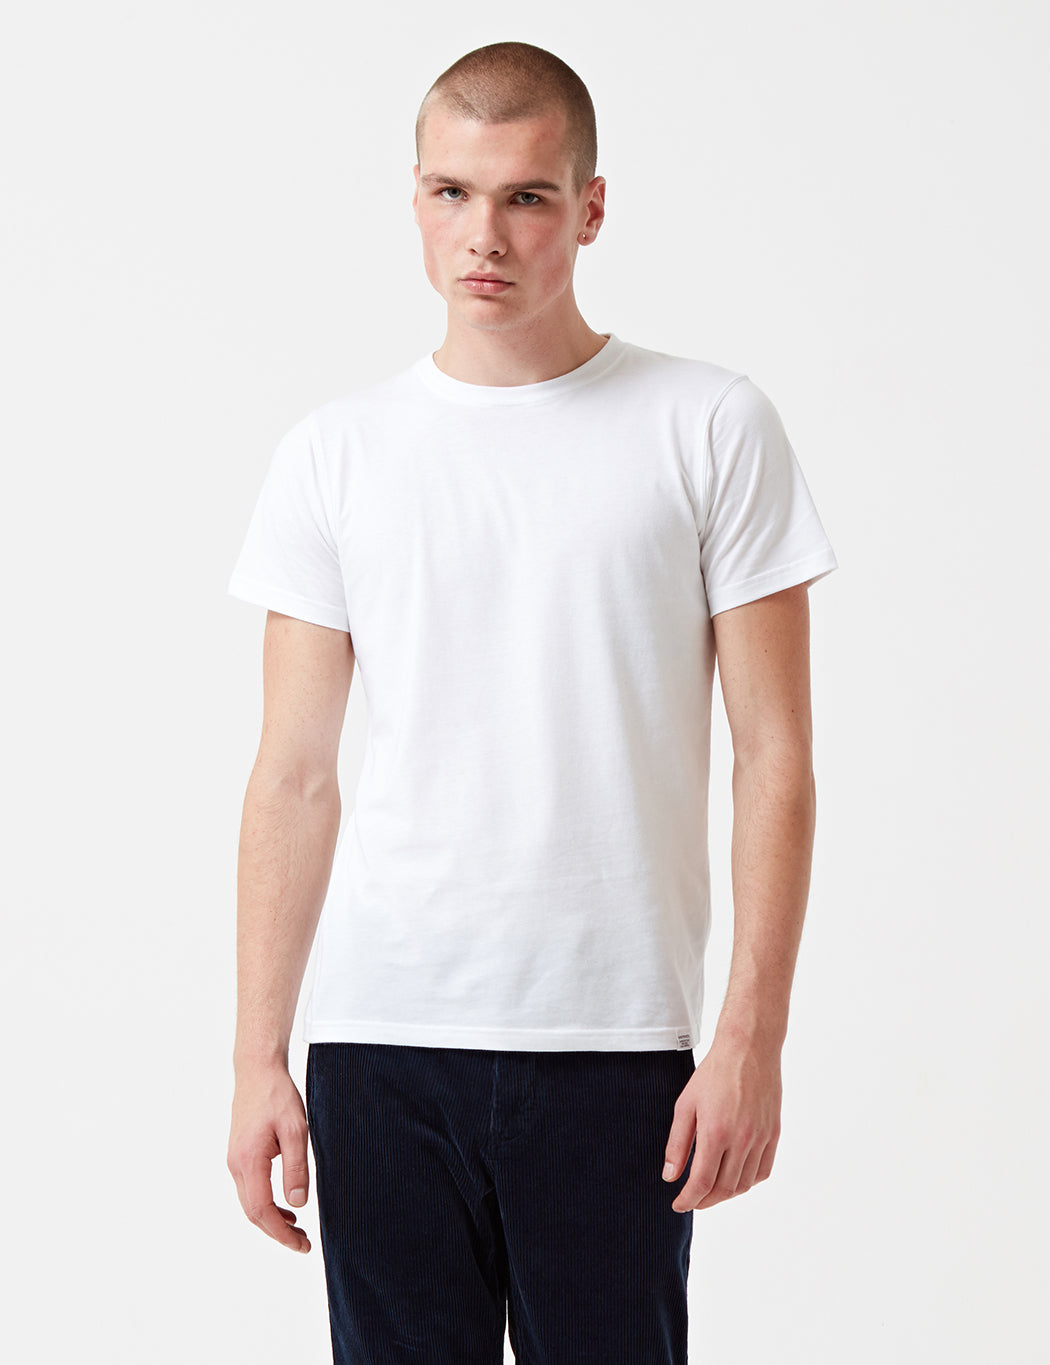 Norse Projects Niels Standard T-Shirt - White | URBAN EXCESS.